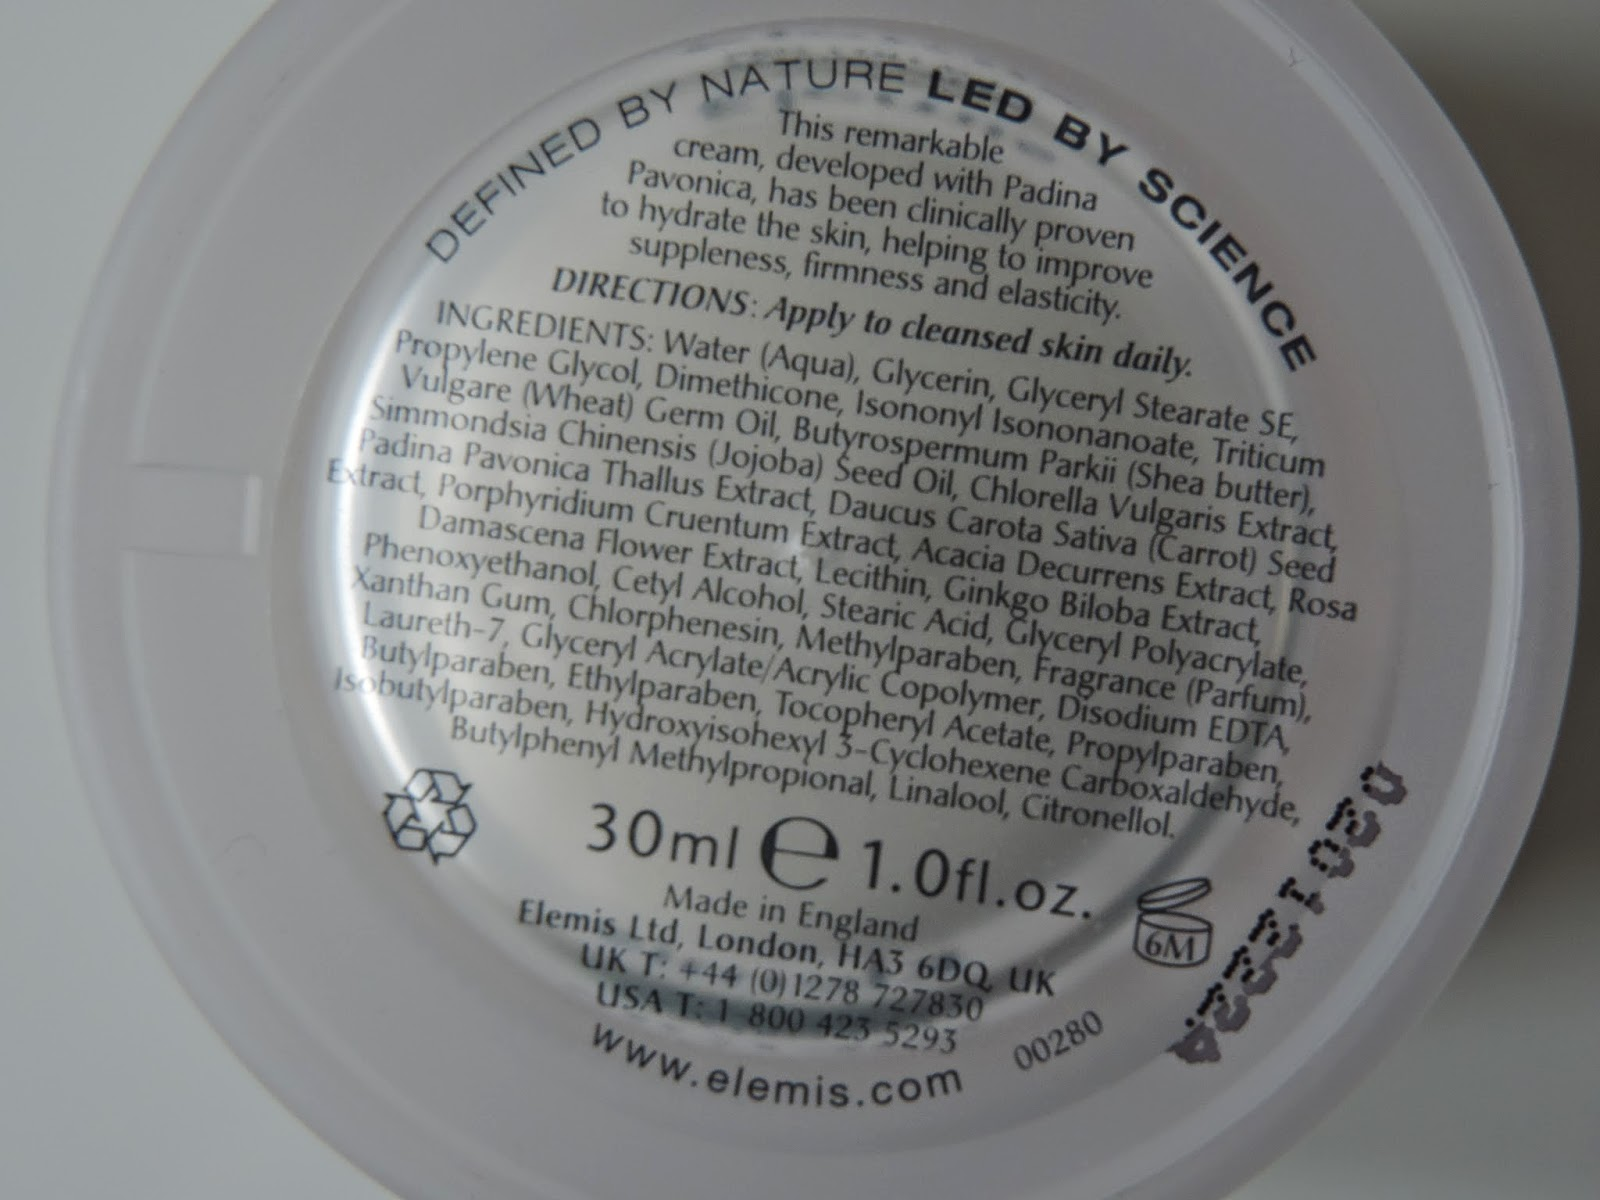 Elemis Pro Collagen Marine Cream Ingredients